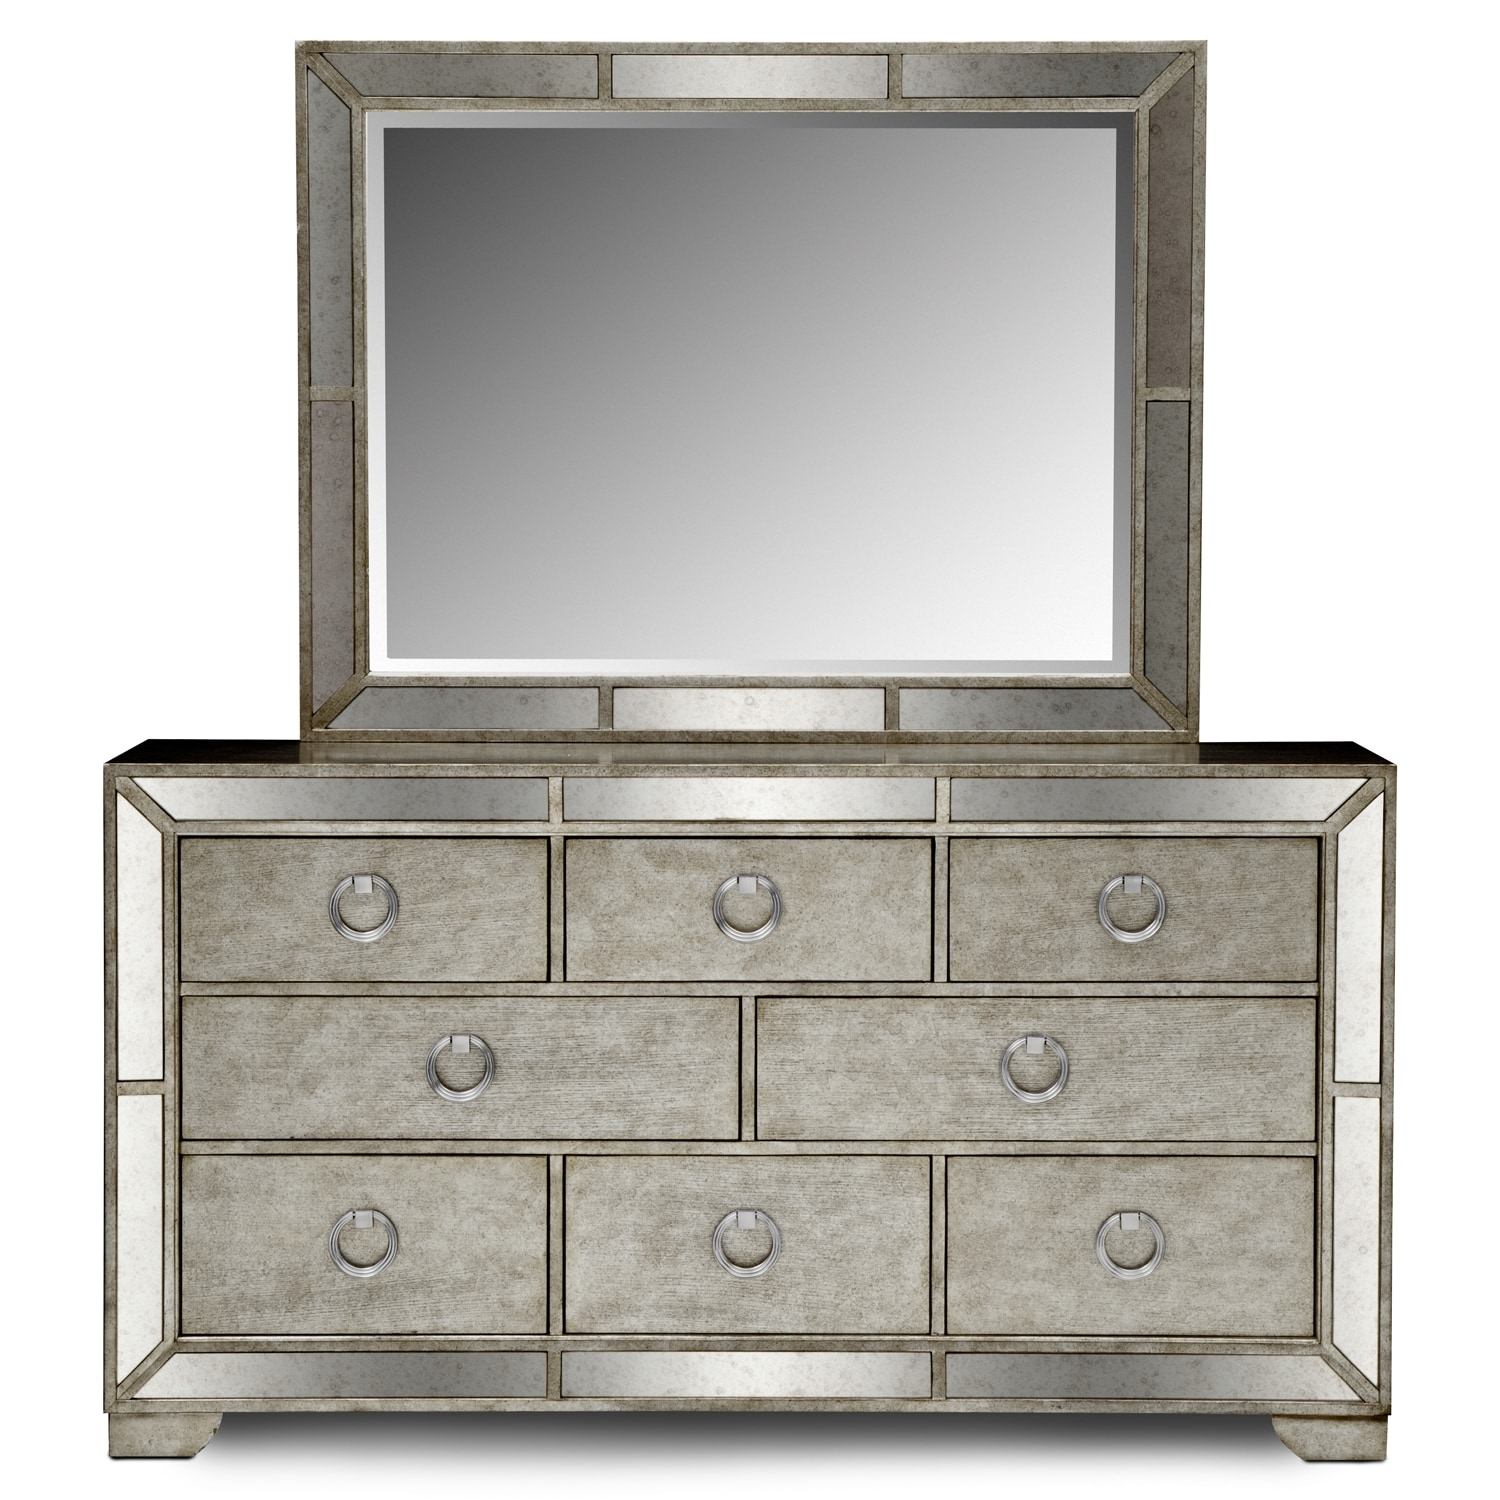 Bedroom Dressers Category Image